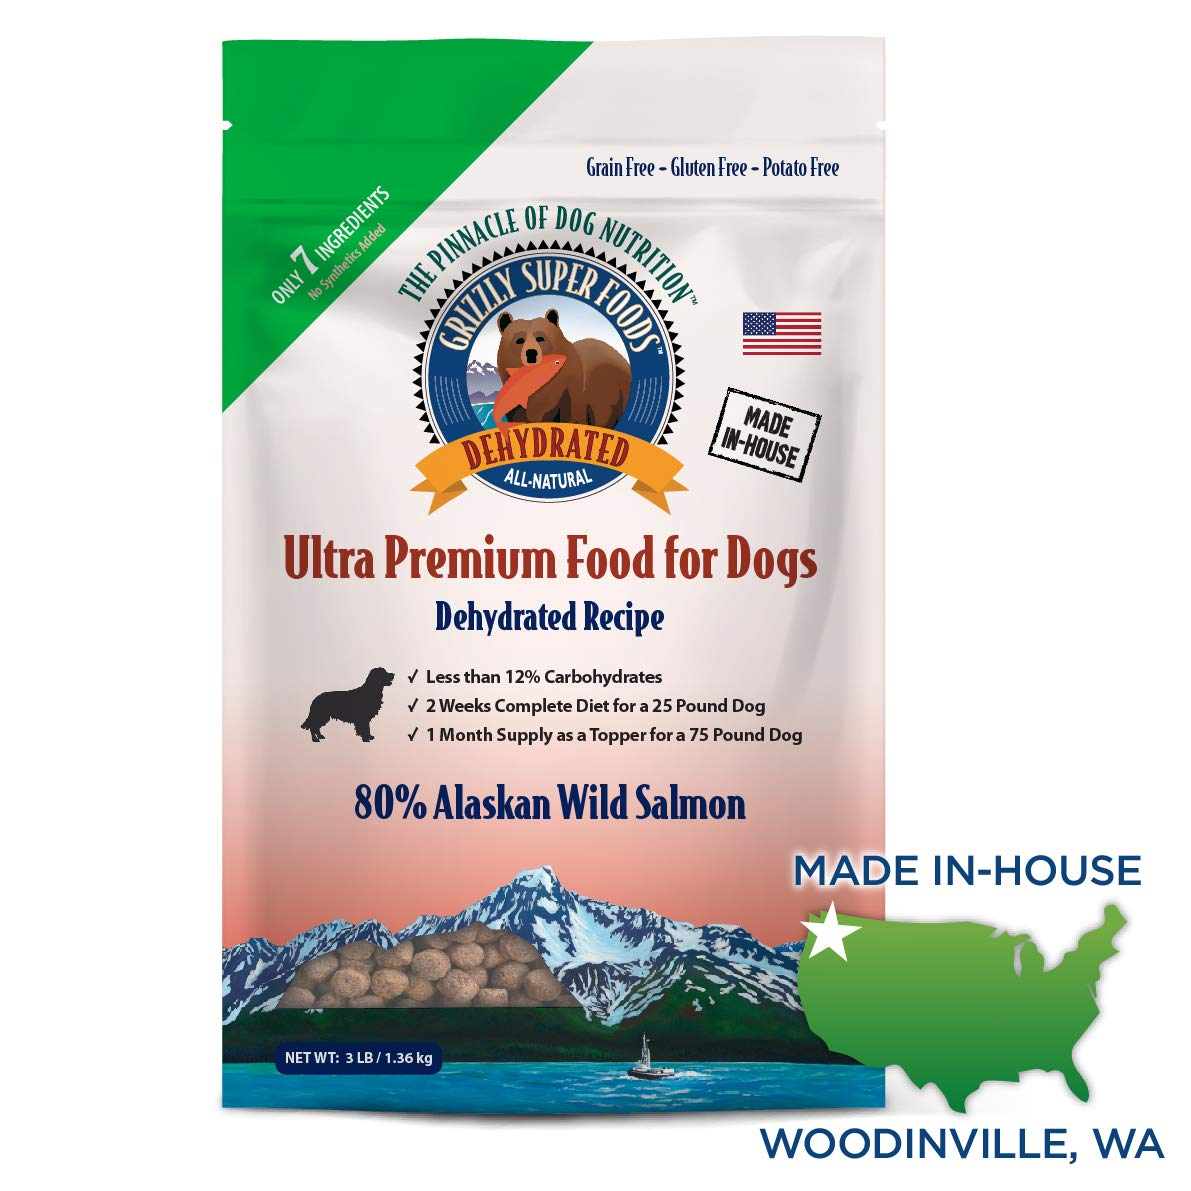 Grizzly Super Foods 7 Ingredient Dehydrated Dog Food - Grain Free, Gluten Free (3 lb) by GRIZZLY SALMON OIL OMEGA 3 FATTY ACIDS ALL-NATURAL